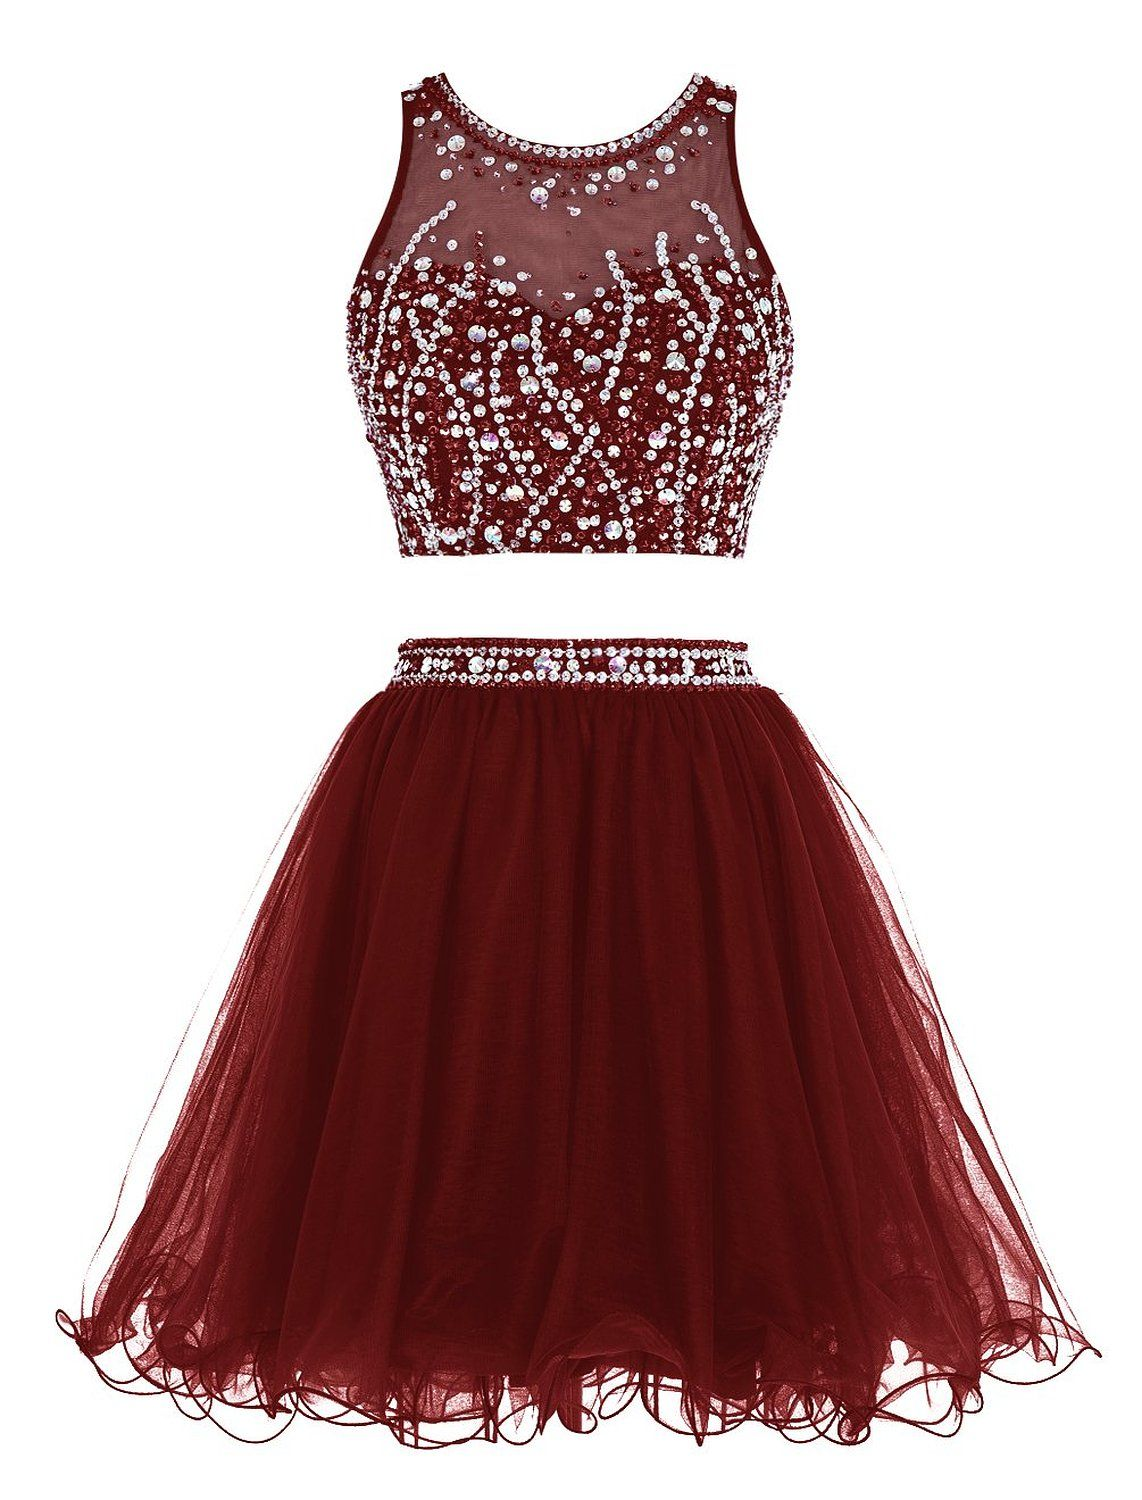 Tideclothes Short Beading Prom Dress Two Pieces Tulle Homecoming Dress  Burgundy US2 87b6b5ecf65a